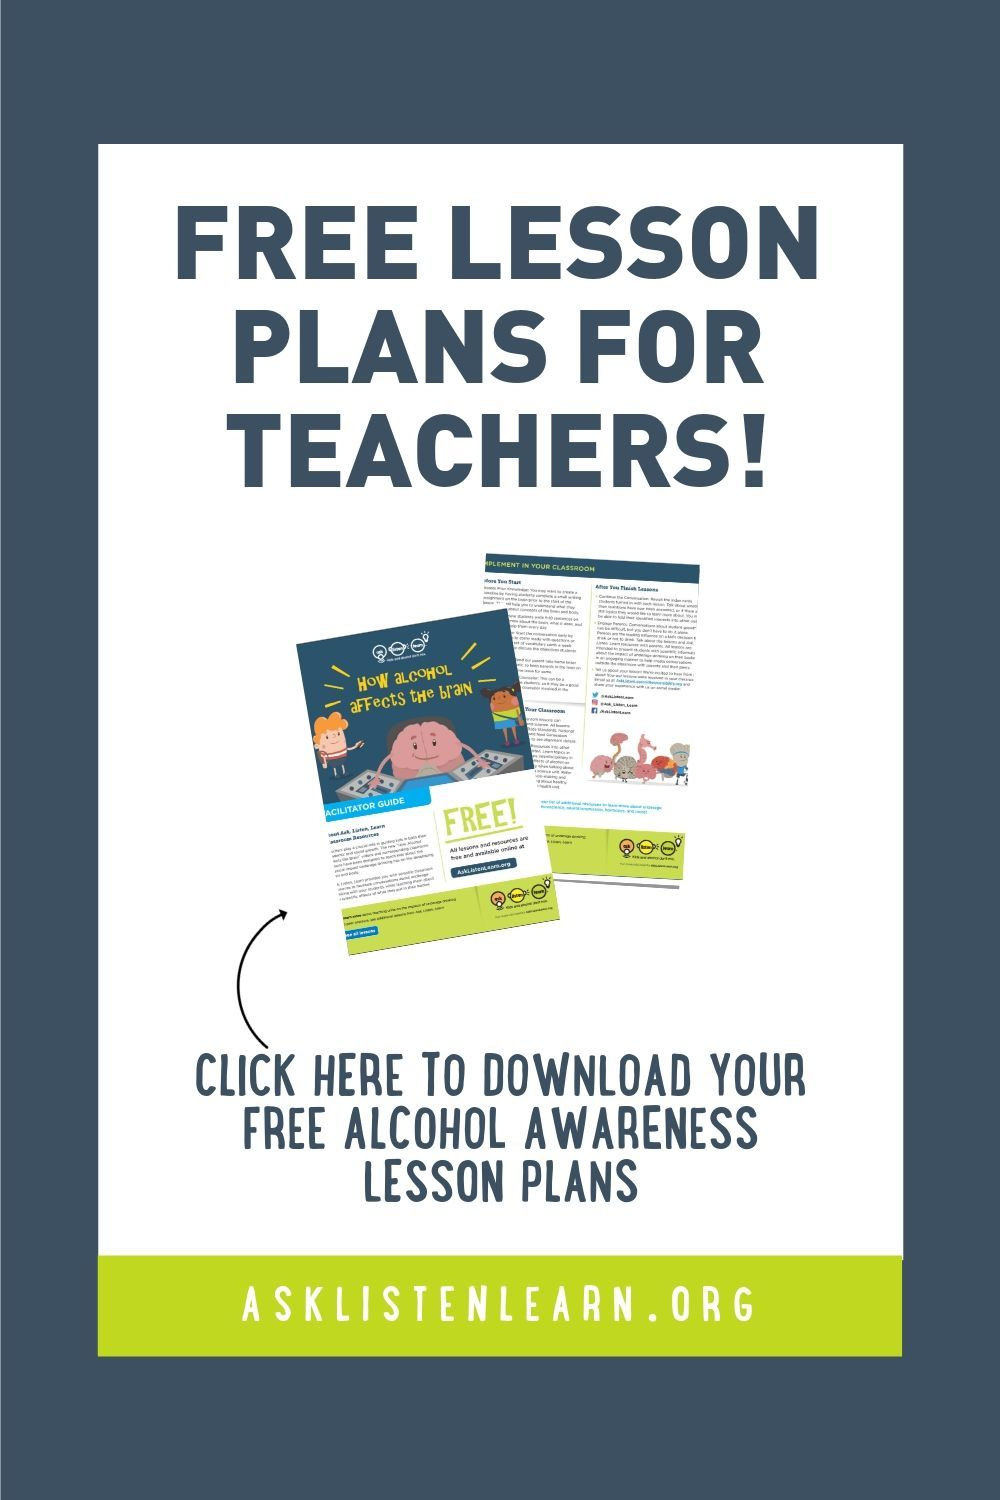 Pin on Free Lesson Plans